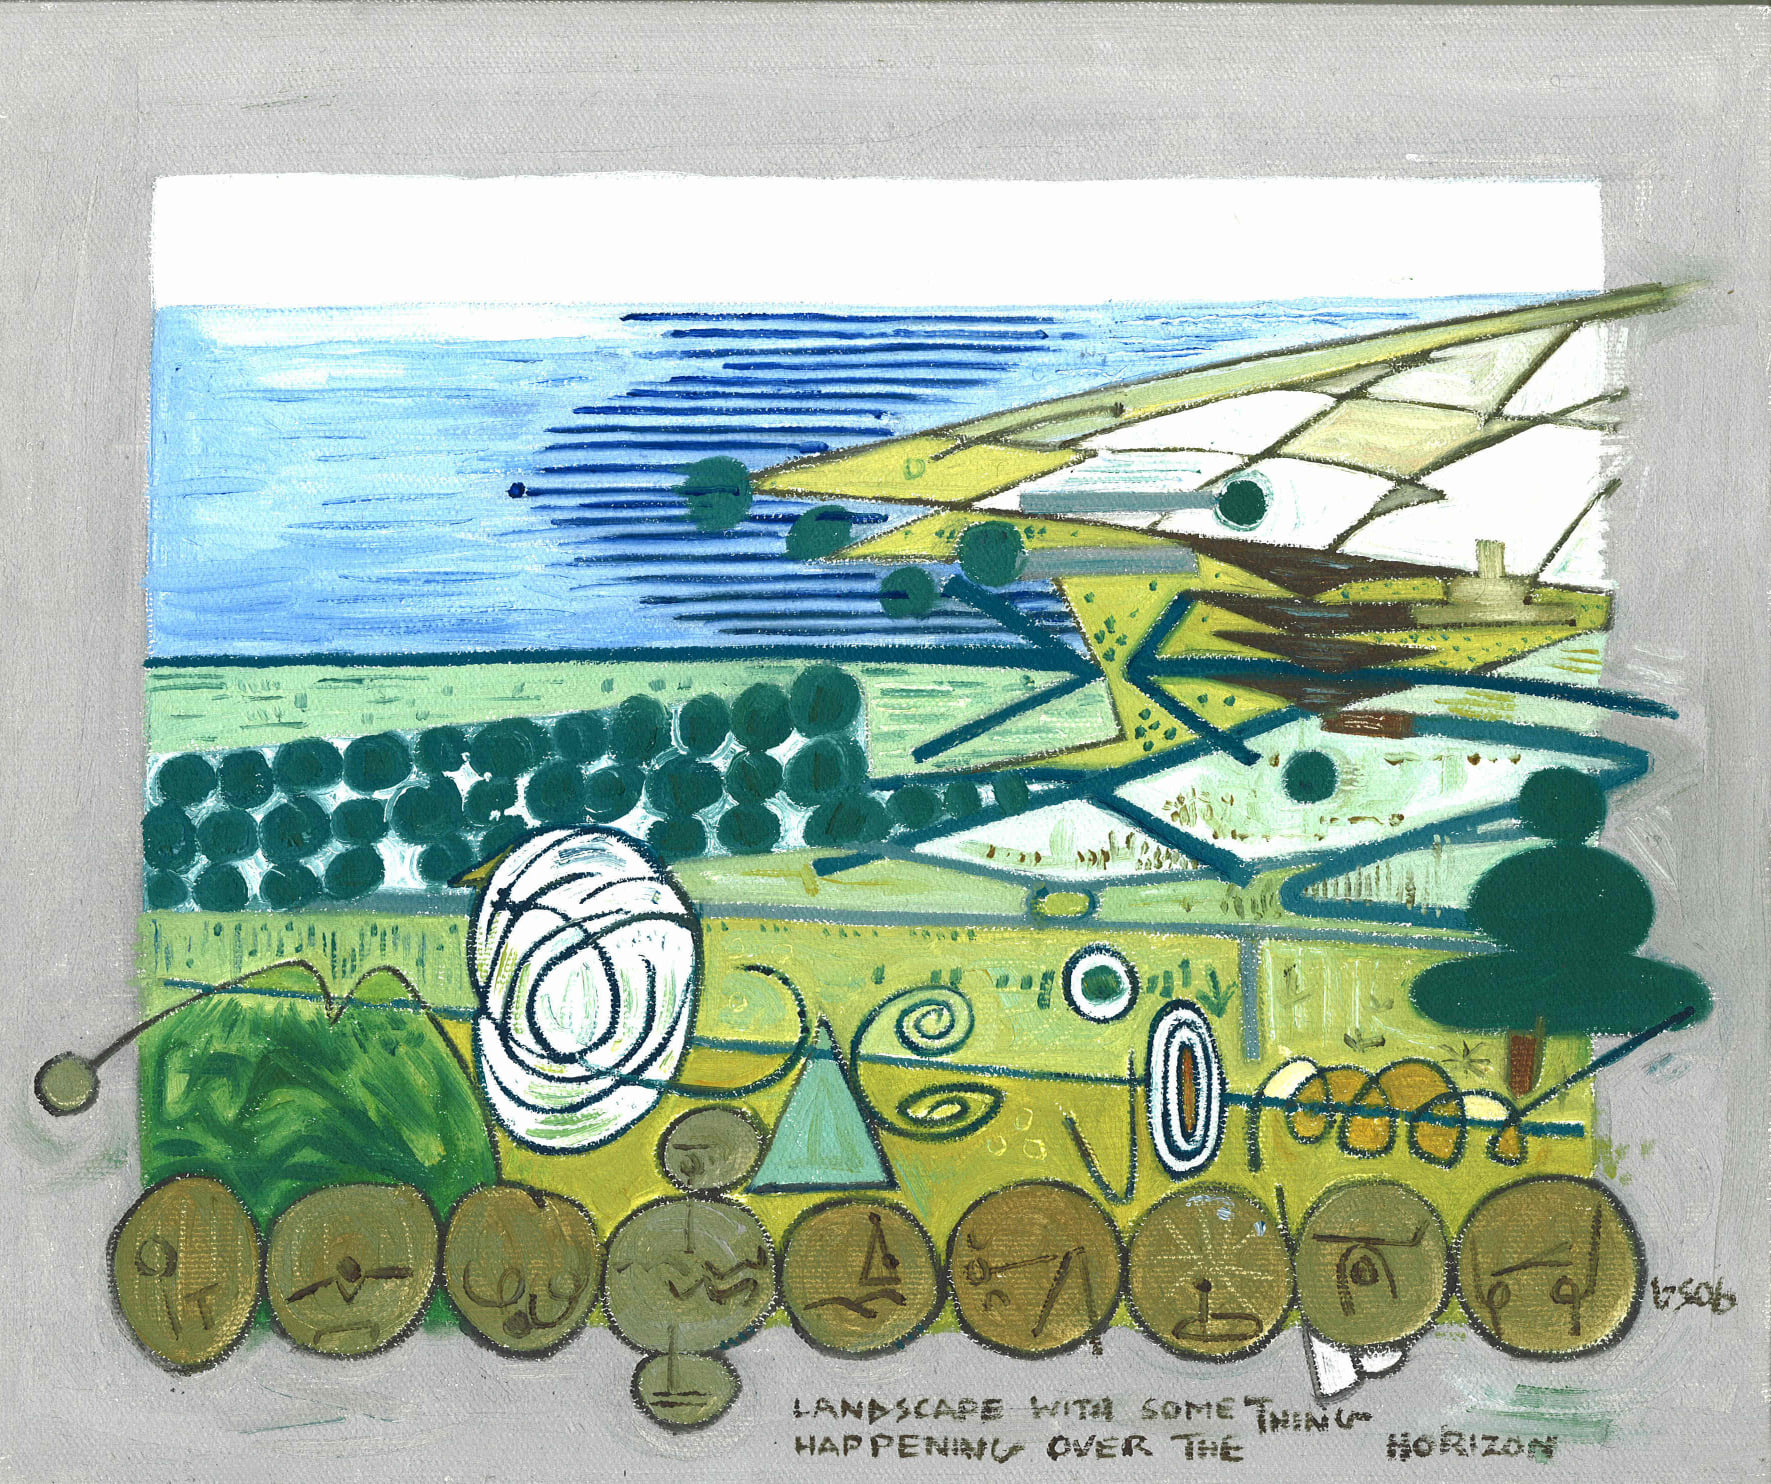 Landscape With Something Happening Over The Horizon - Gerry Shepherd